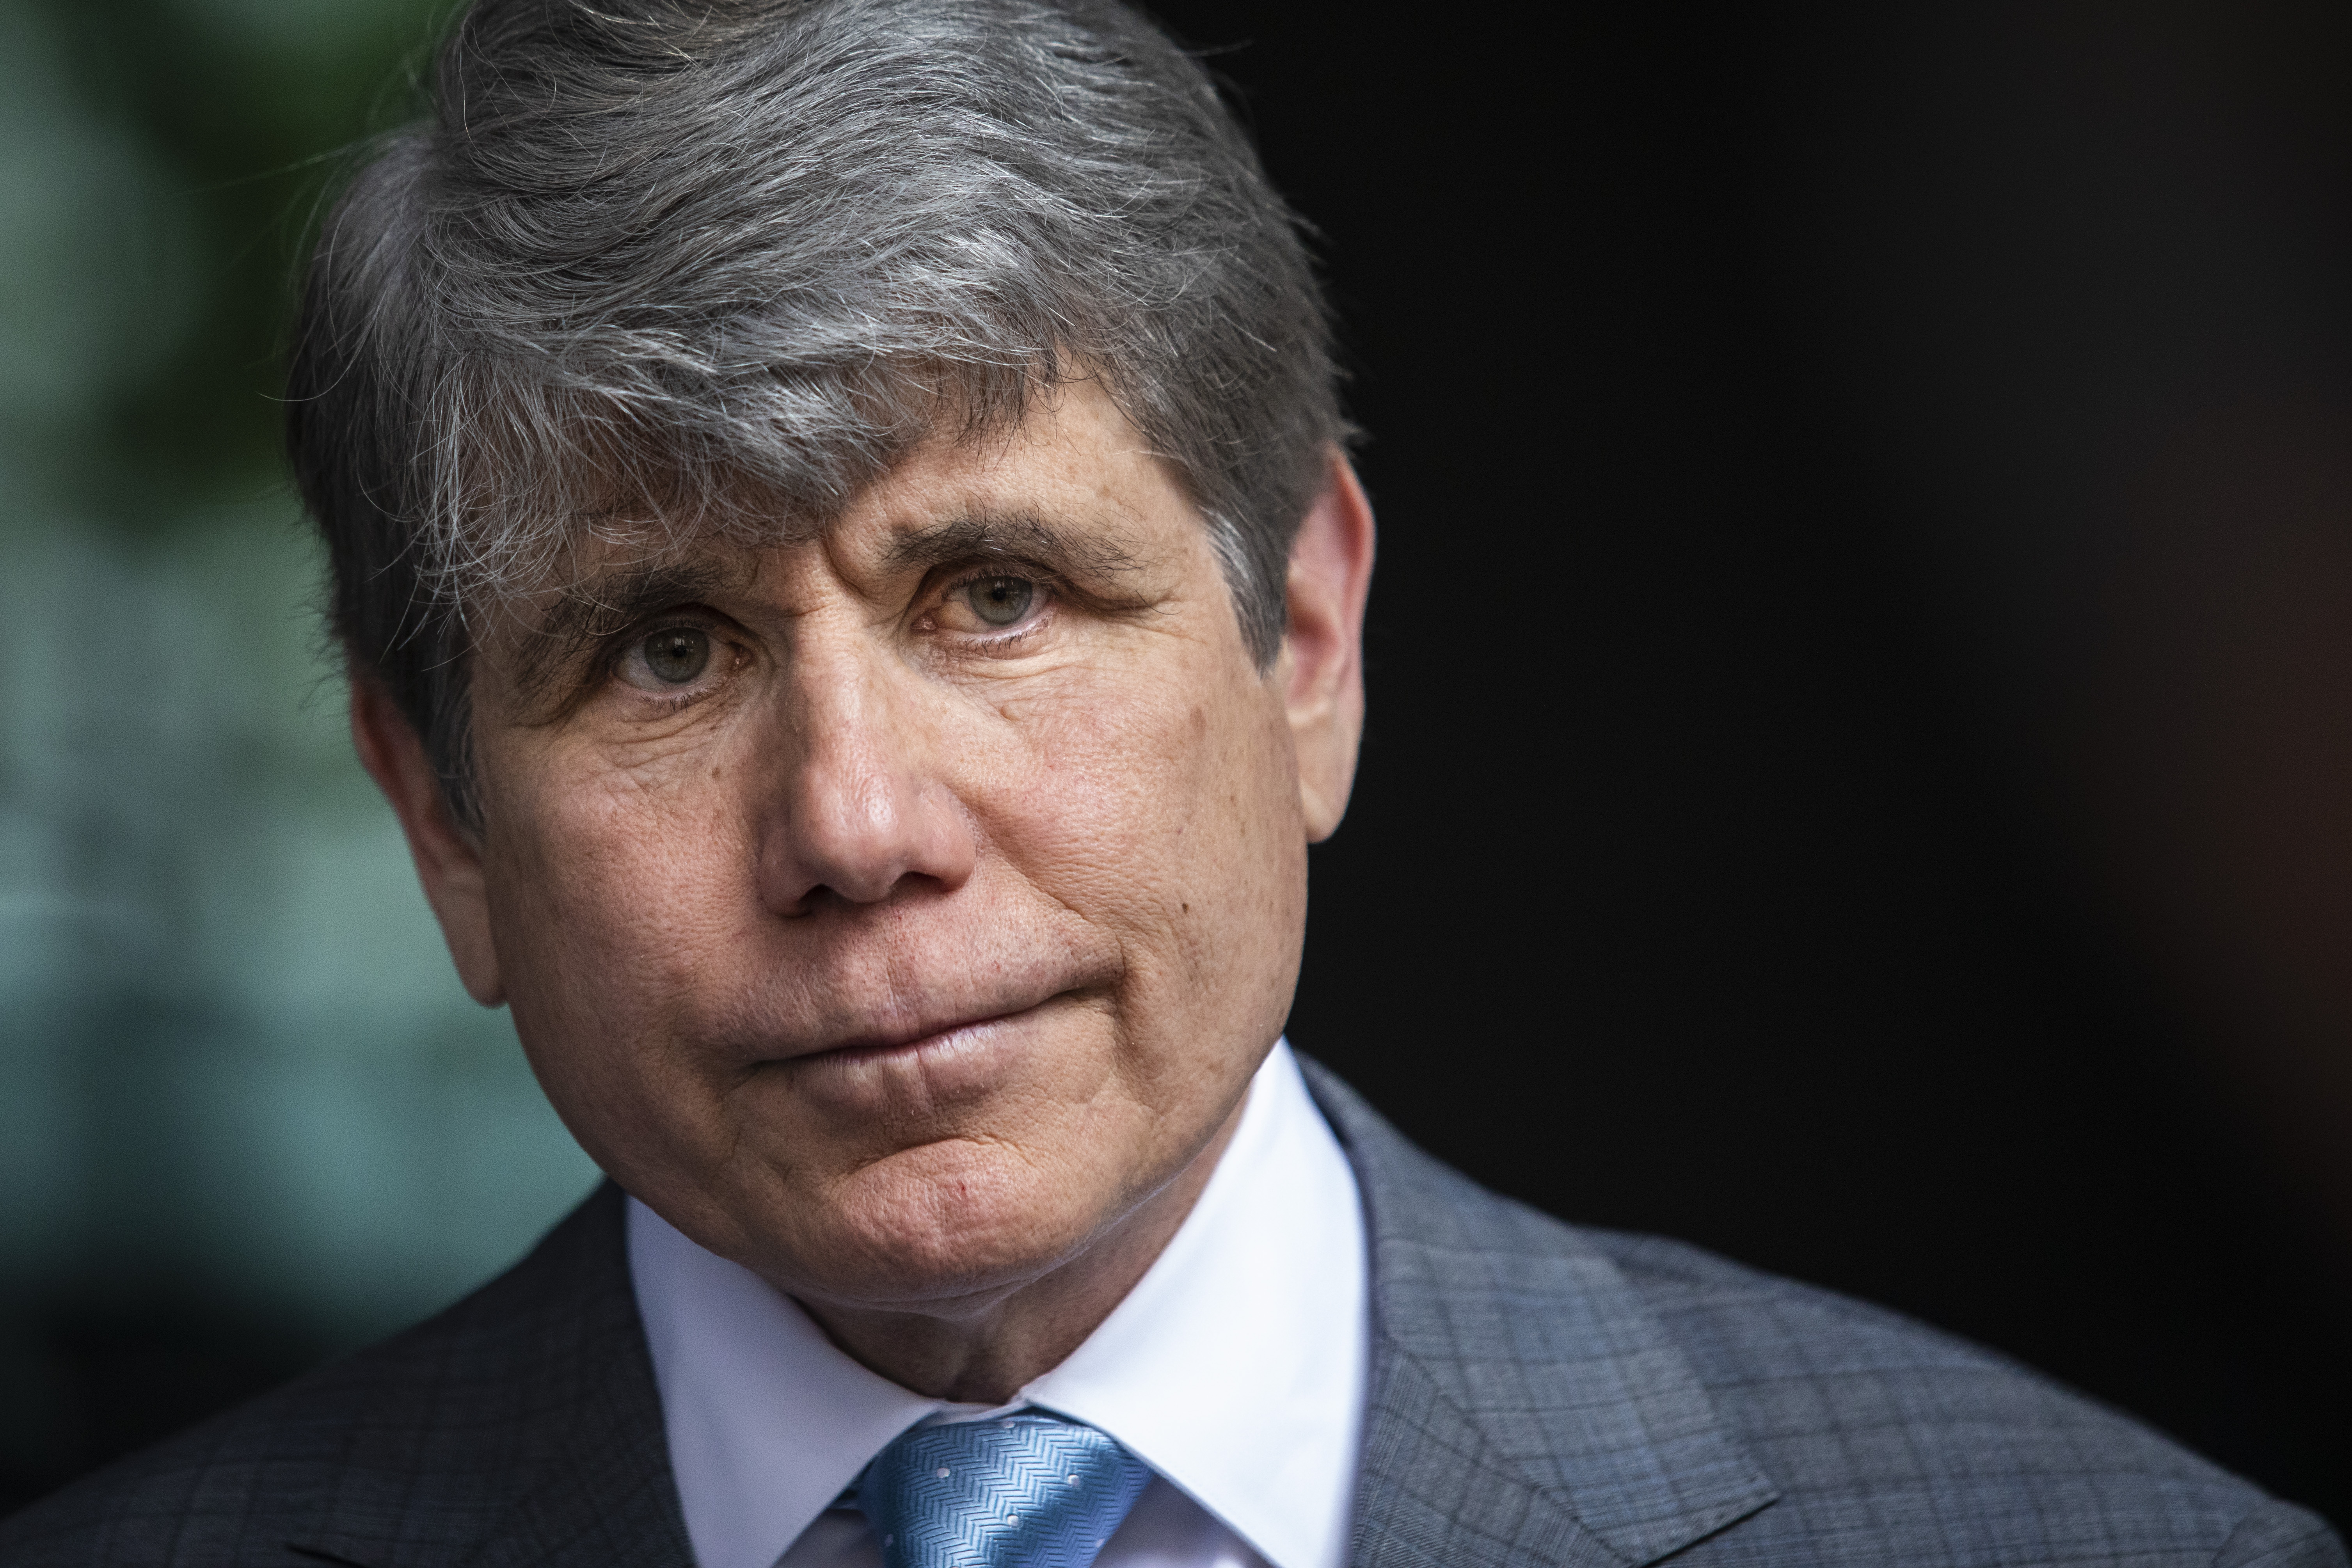 Former Gov. Rod Blagojevich speaks during a news conference outside the Dirksen Federal Courthouse before filing a suit to challenge the Illinois General Assembly's disqualifying resolution that prohibits him from running for any state or local office, Monday afternoon, Aug. 2, 2021.